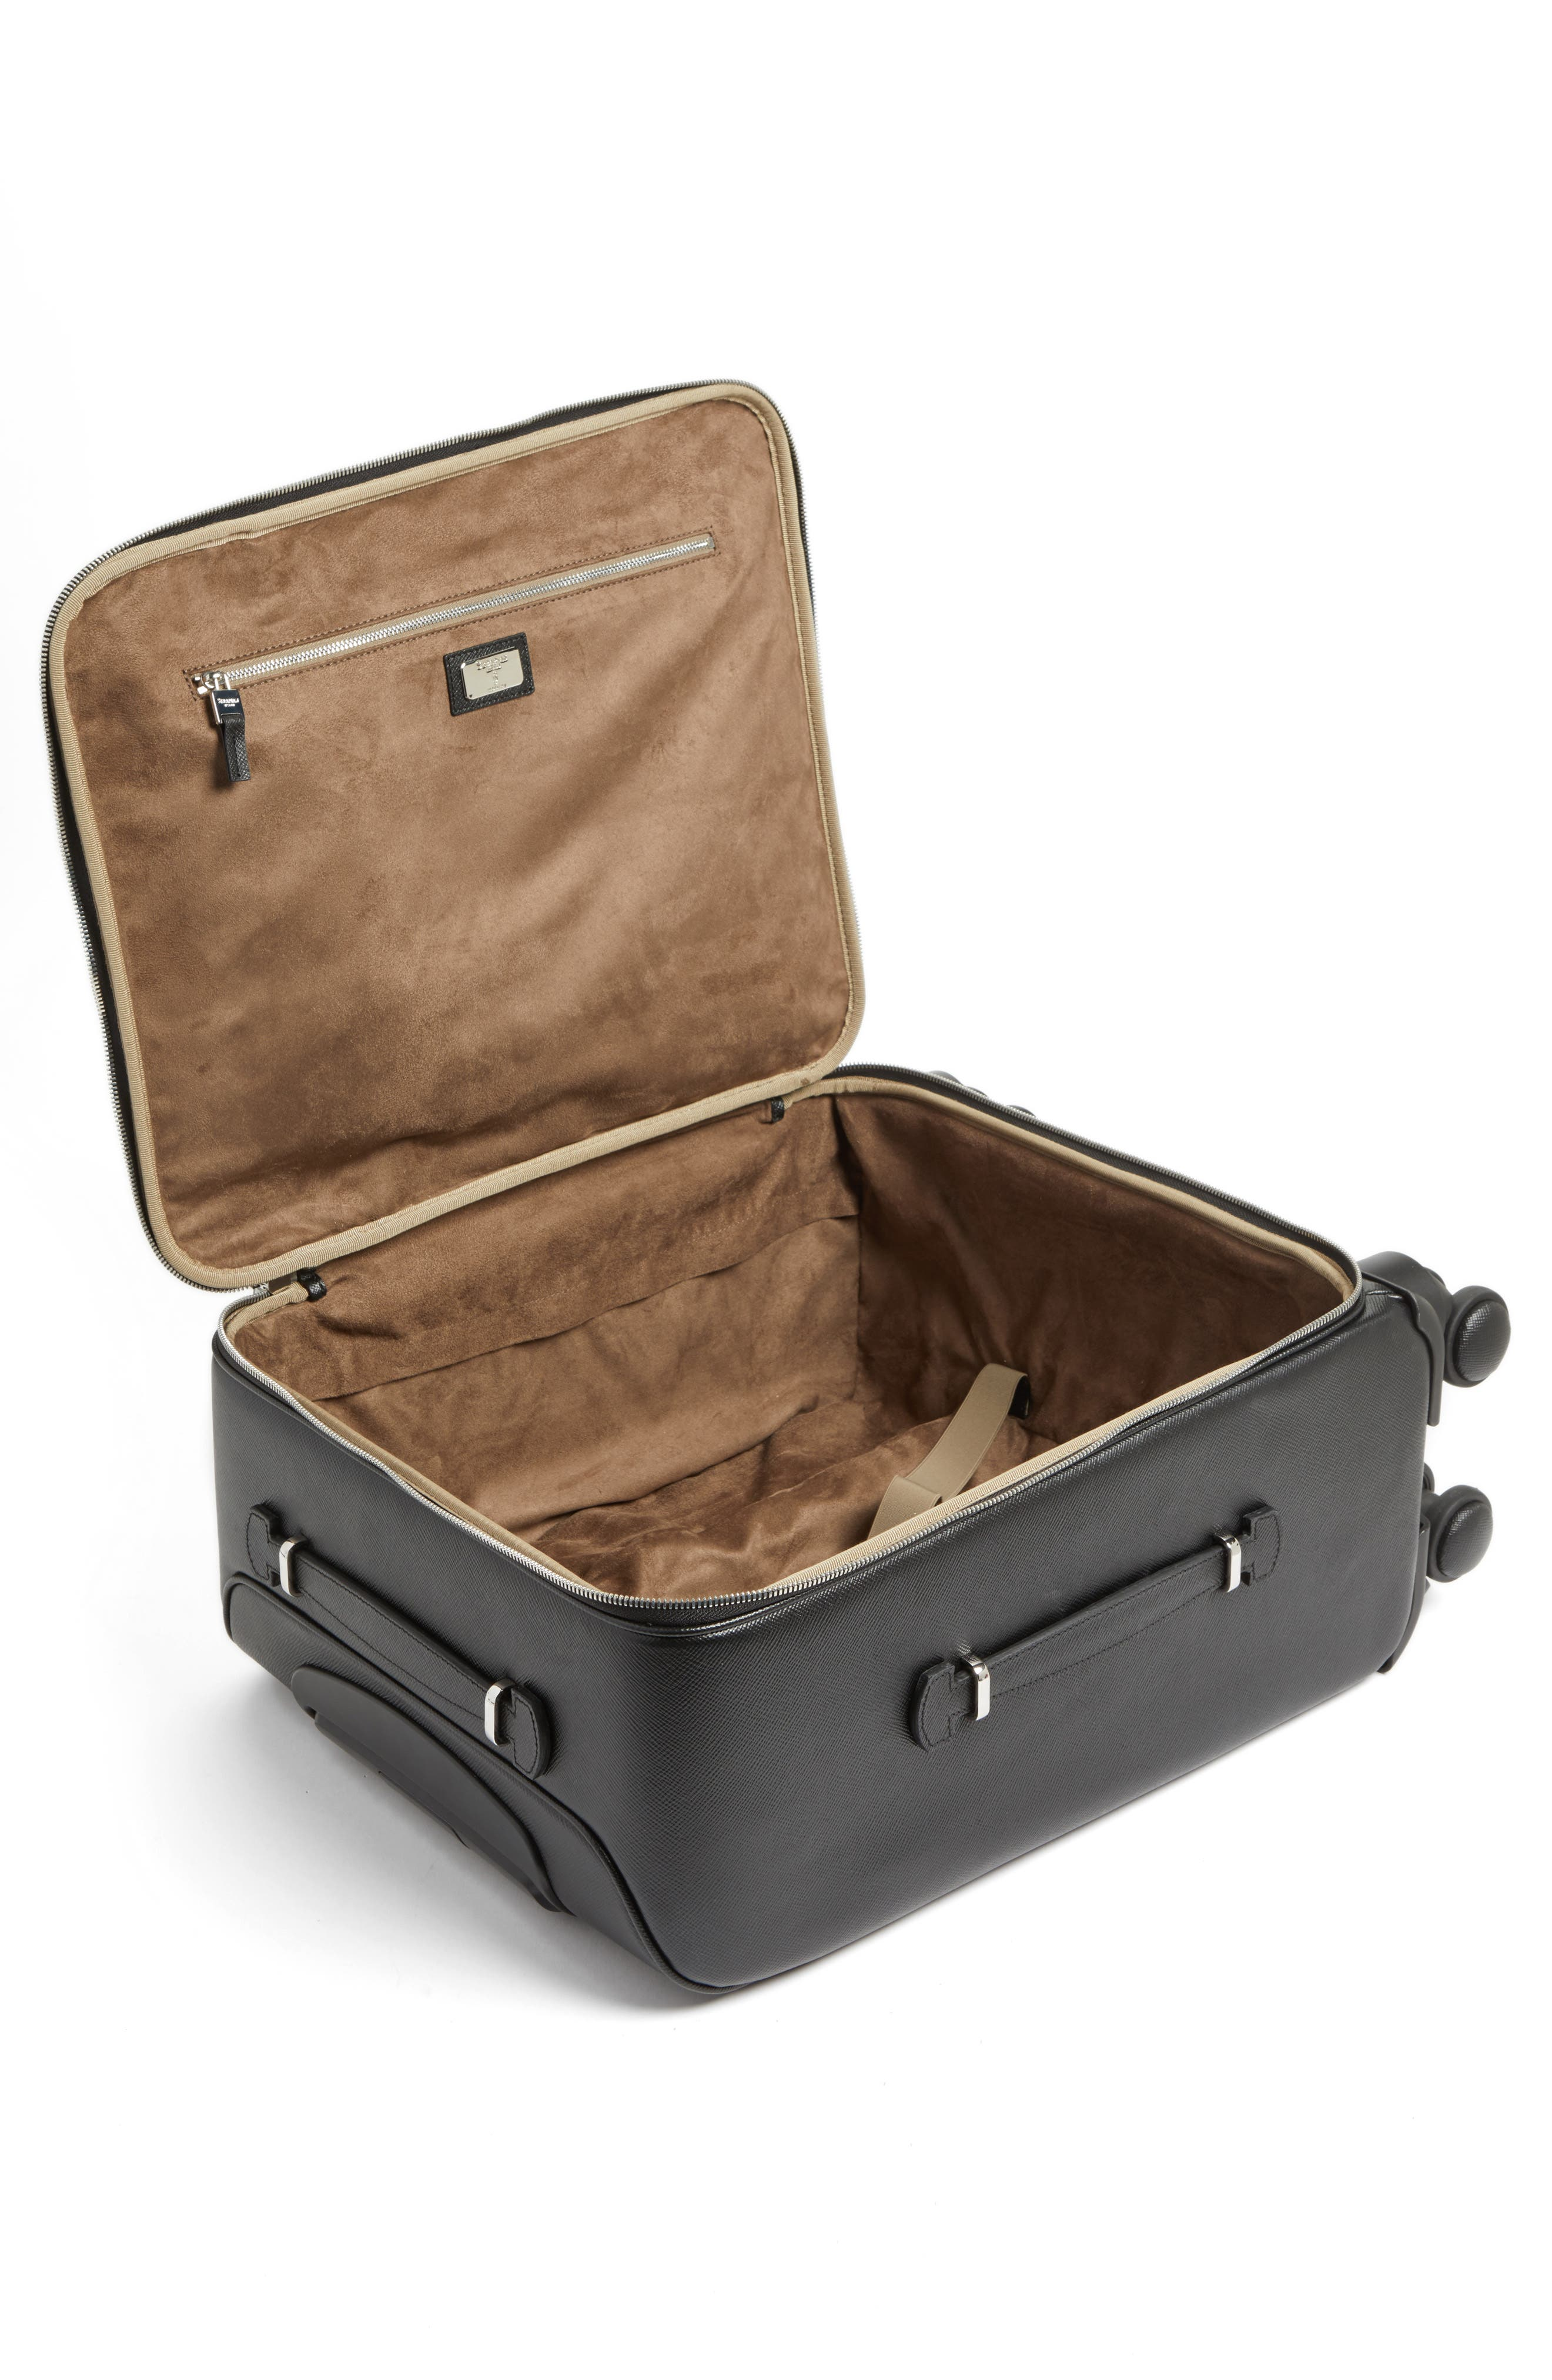 Trolley Spinner Wheeled Carry-On Suitcase,                             Alternate thumbnail 2, color,                             Black